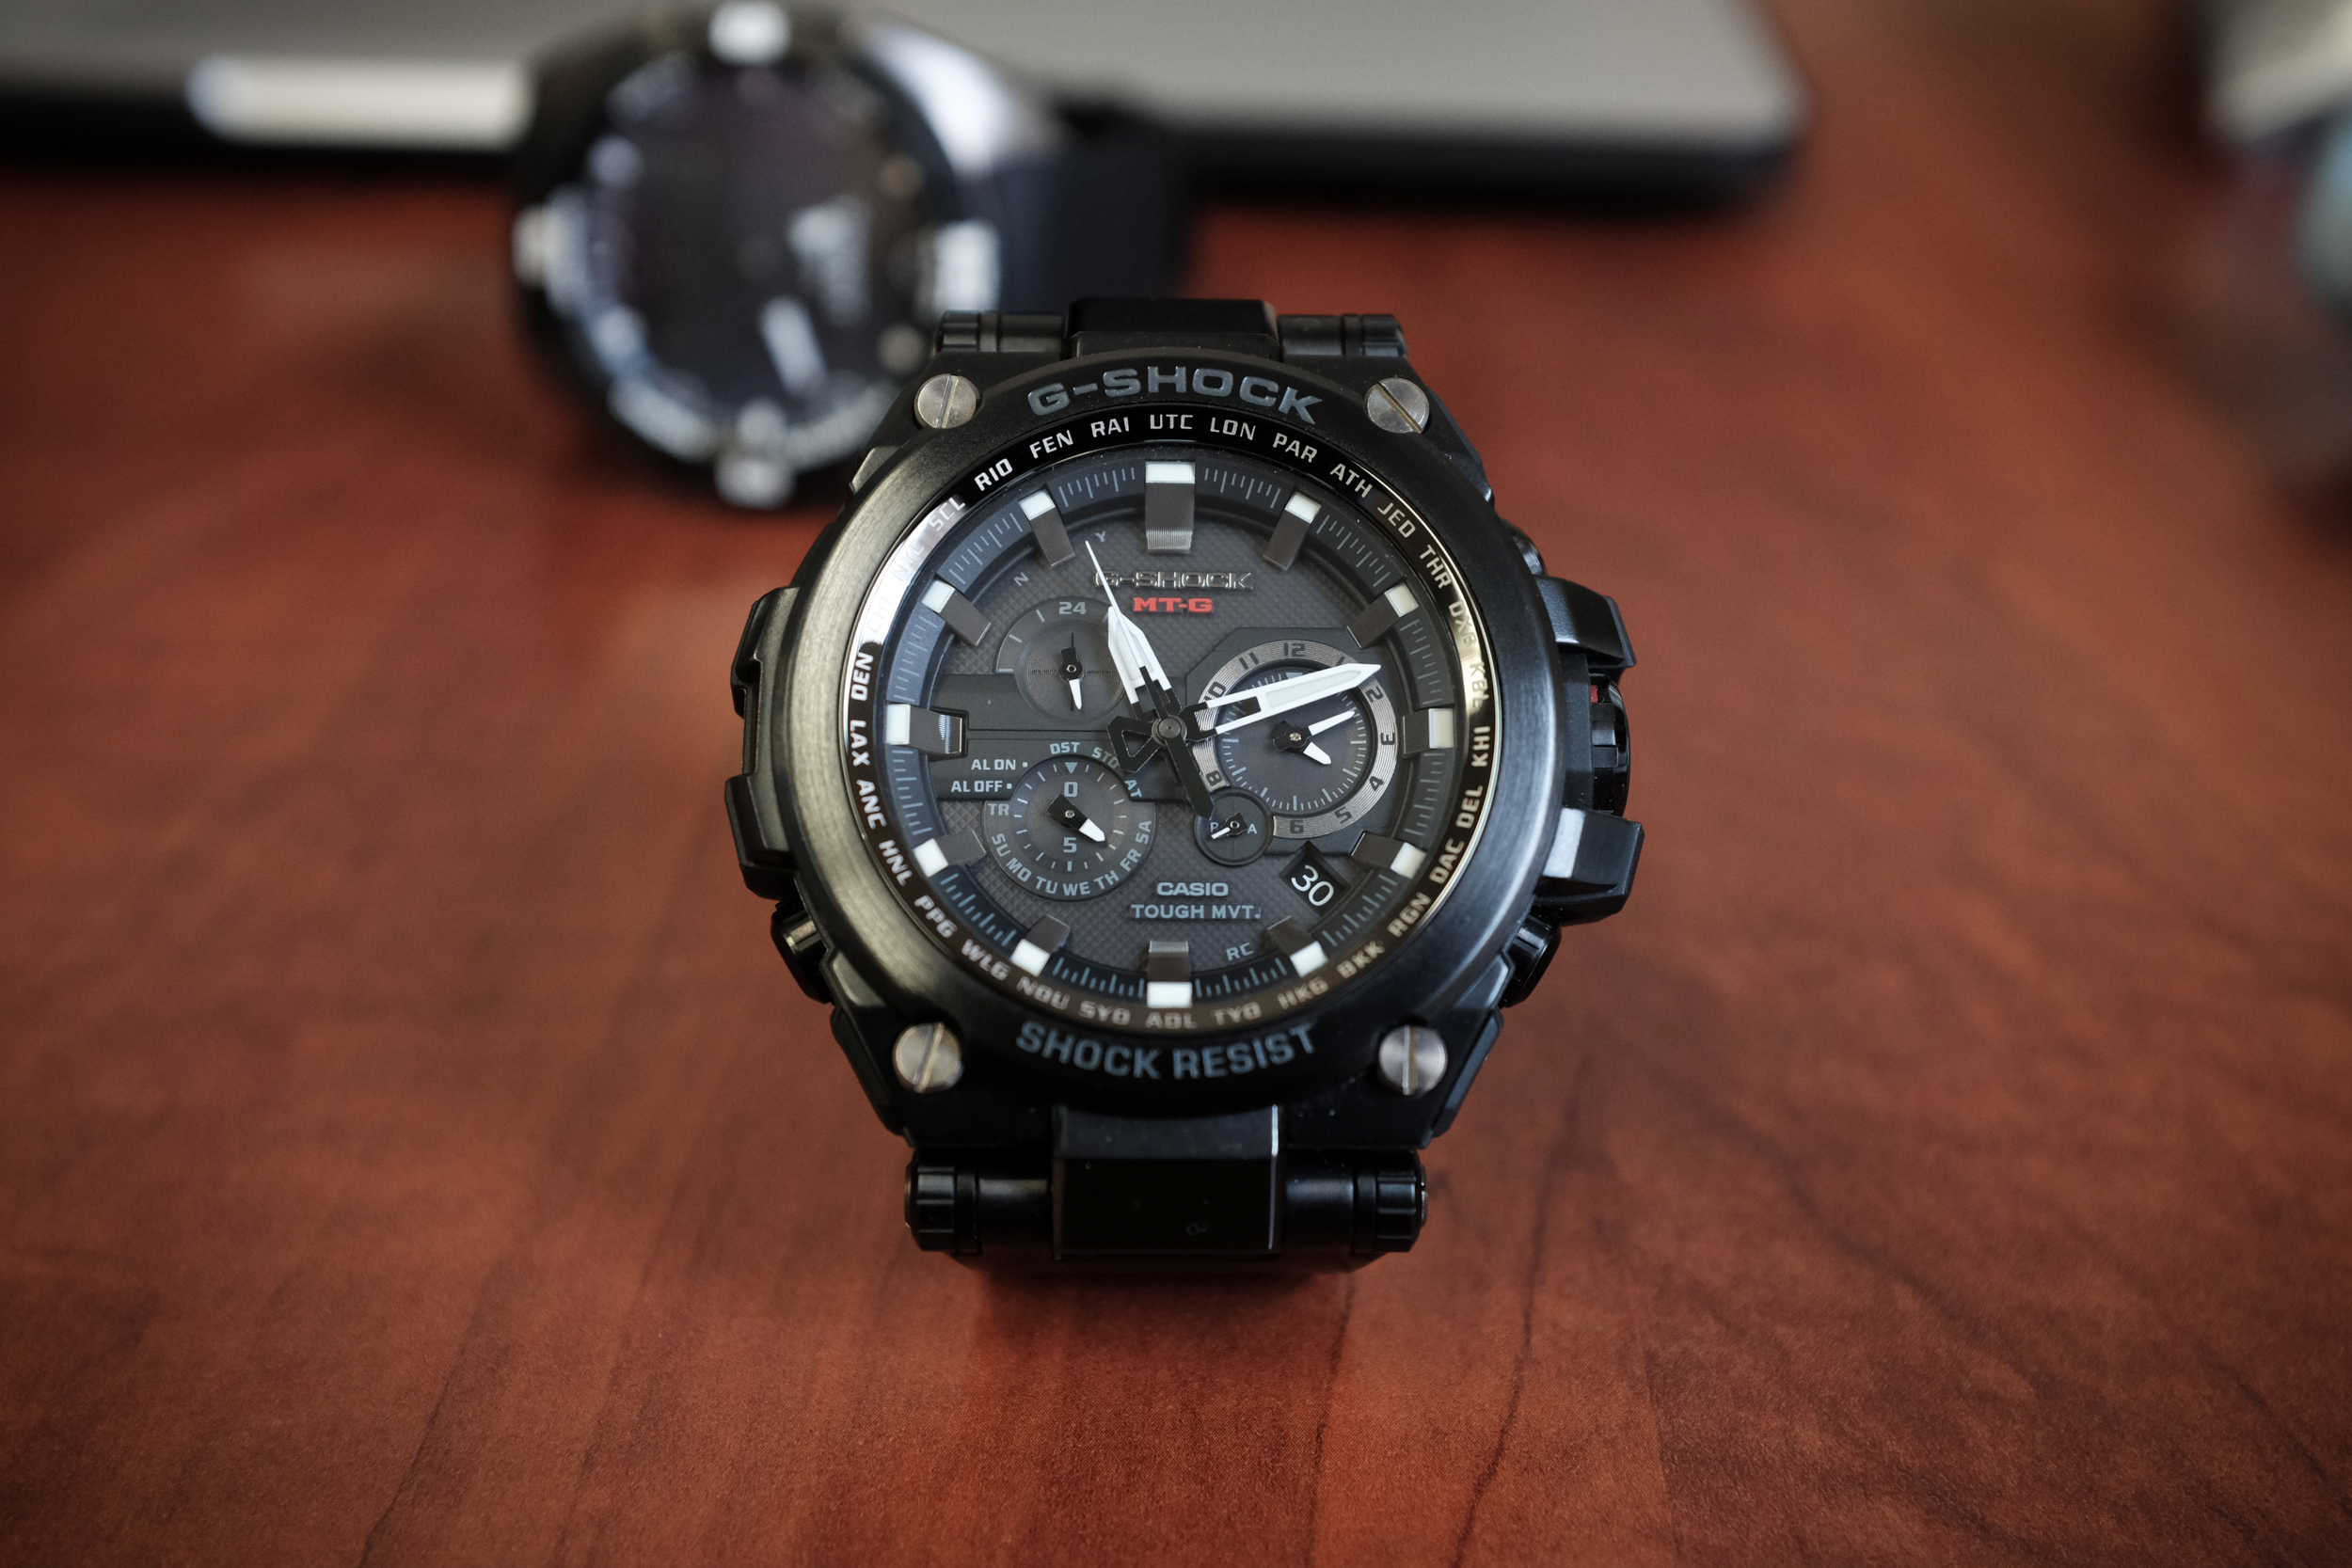 """Solar Powered, Alarm, Abunch of cities to adjust to automatically (really accurate time), Water Resist 200m, Shock Resistant, blah blah blah.... this is a frikkin mans watch. This is the watch you hike, skydive, climb mountains, fight bears and wear to take pictures of models in.  Most importantly, they won't break the bank. Both a little over $1k and will last, both physically, practically and aesthetically.  These are for the man that knows himself and likes nice stuff. Theses are conversation pieces. The watch snobs will probably look down on you... but the truth is, those are the jackasses that allow their """"geek' to override their """"chic"""". It is common in every facet of life. People become so 'into' their thing that they can't let people be dope as themselves.   The key is to be comfortable being YOU! Why go get a watch that you know nothing about and understand even less regarding the culture.   #BeDope.   P.S. All this.... until you can afford that Rolex DayDate or IWC Big Pilot... then go get it!!!!! They are definitely awesome!!!!"""